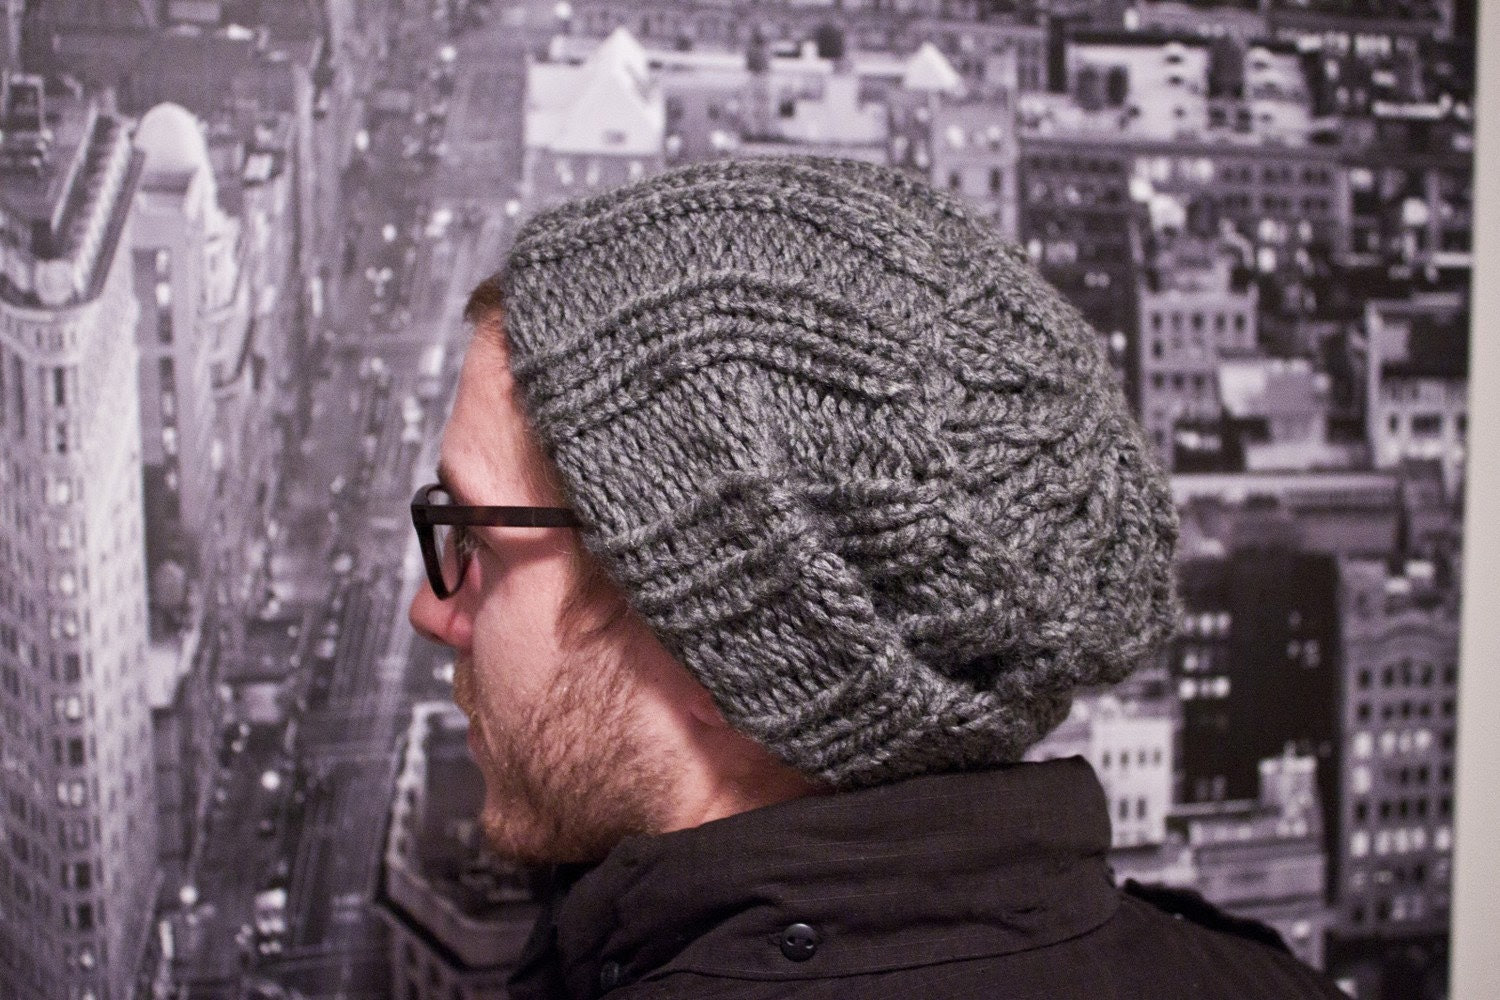 SALE item of the week - - Slouchy Knit Unisex Hat- 'Creeper Slouch'- ONLY Grey, Black or Olive on sale